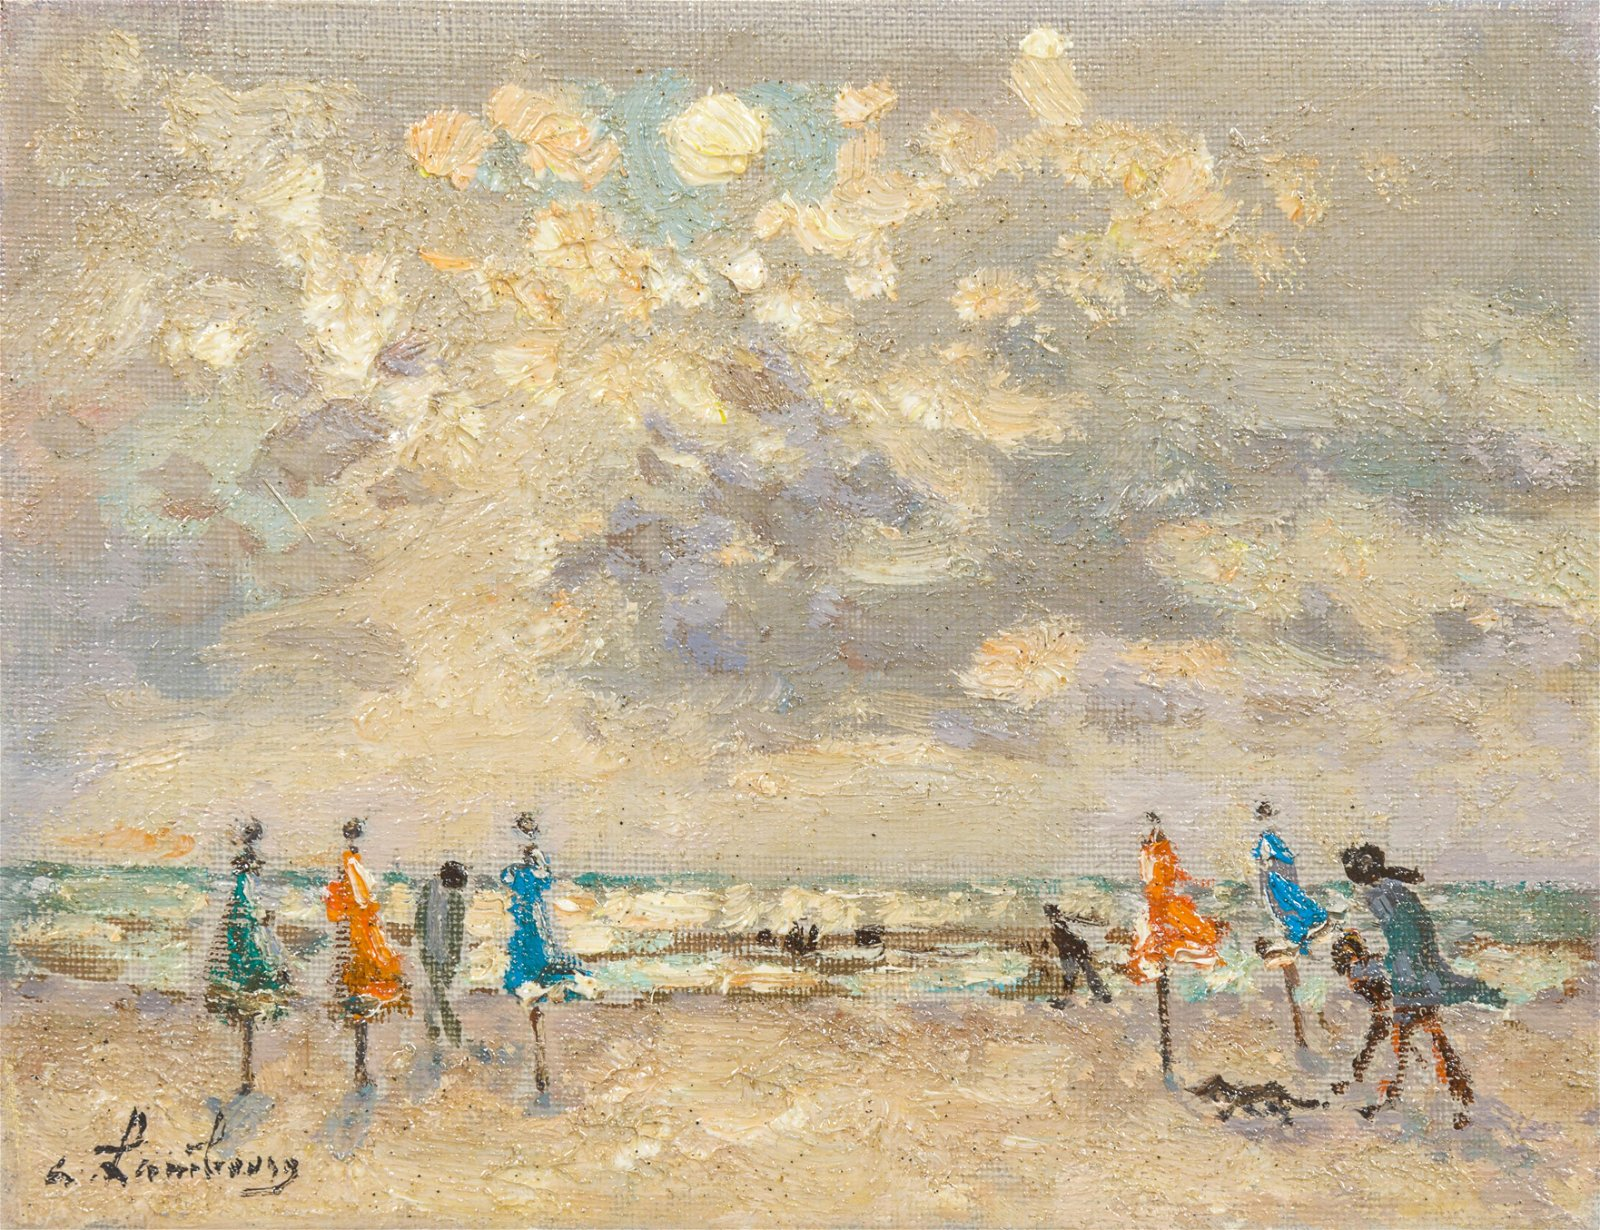 Andre Hambourg  (French, 1909-1999) Maree basse a